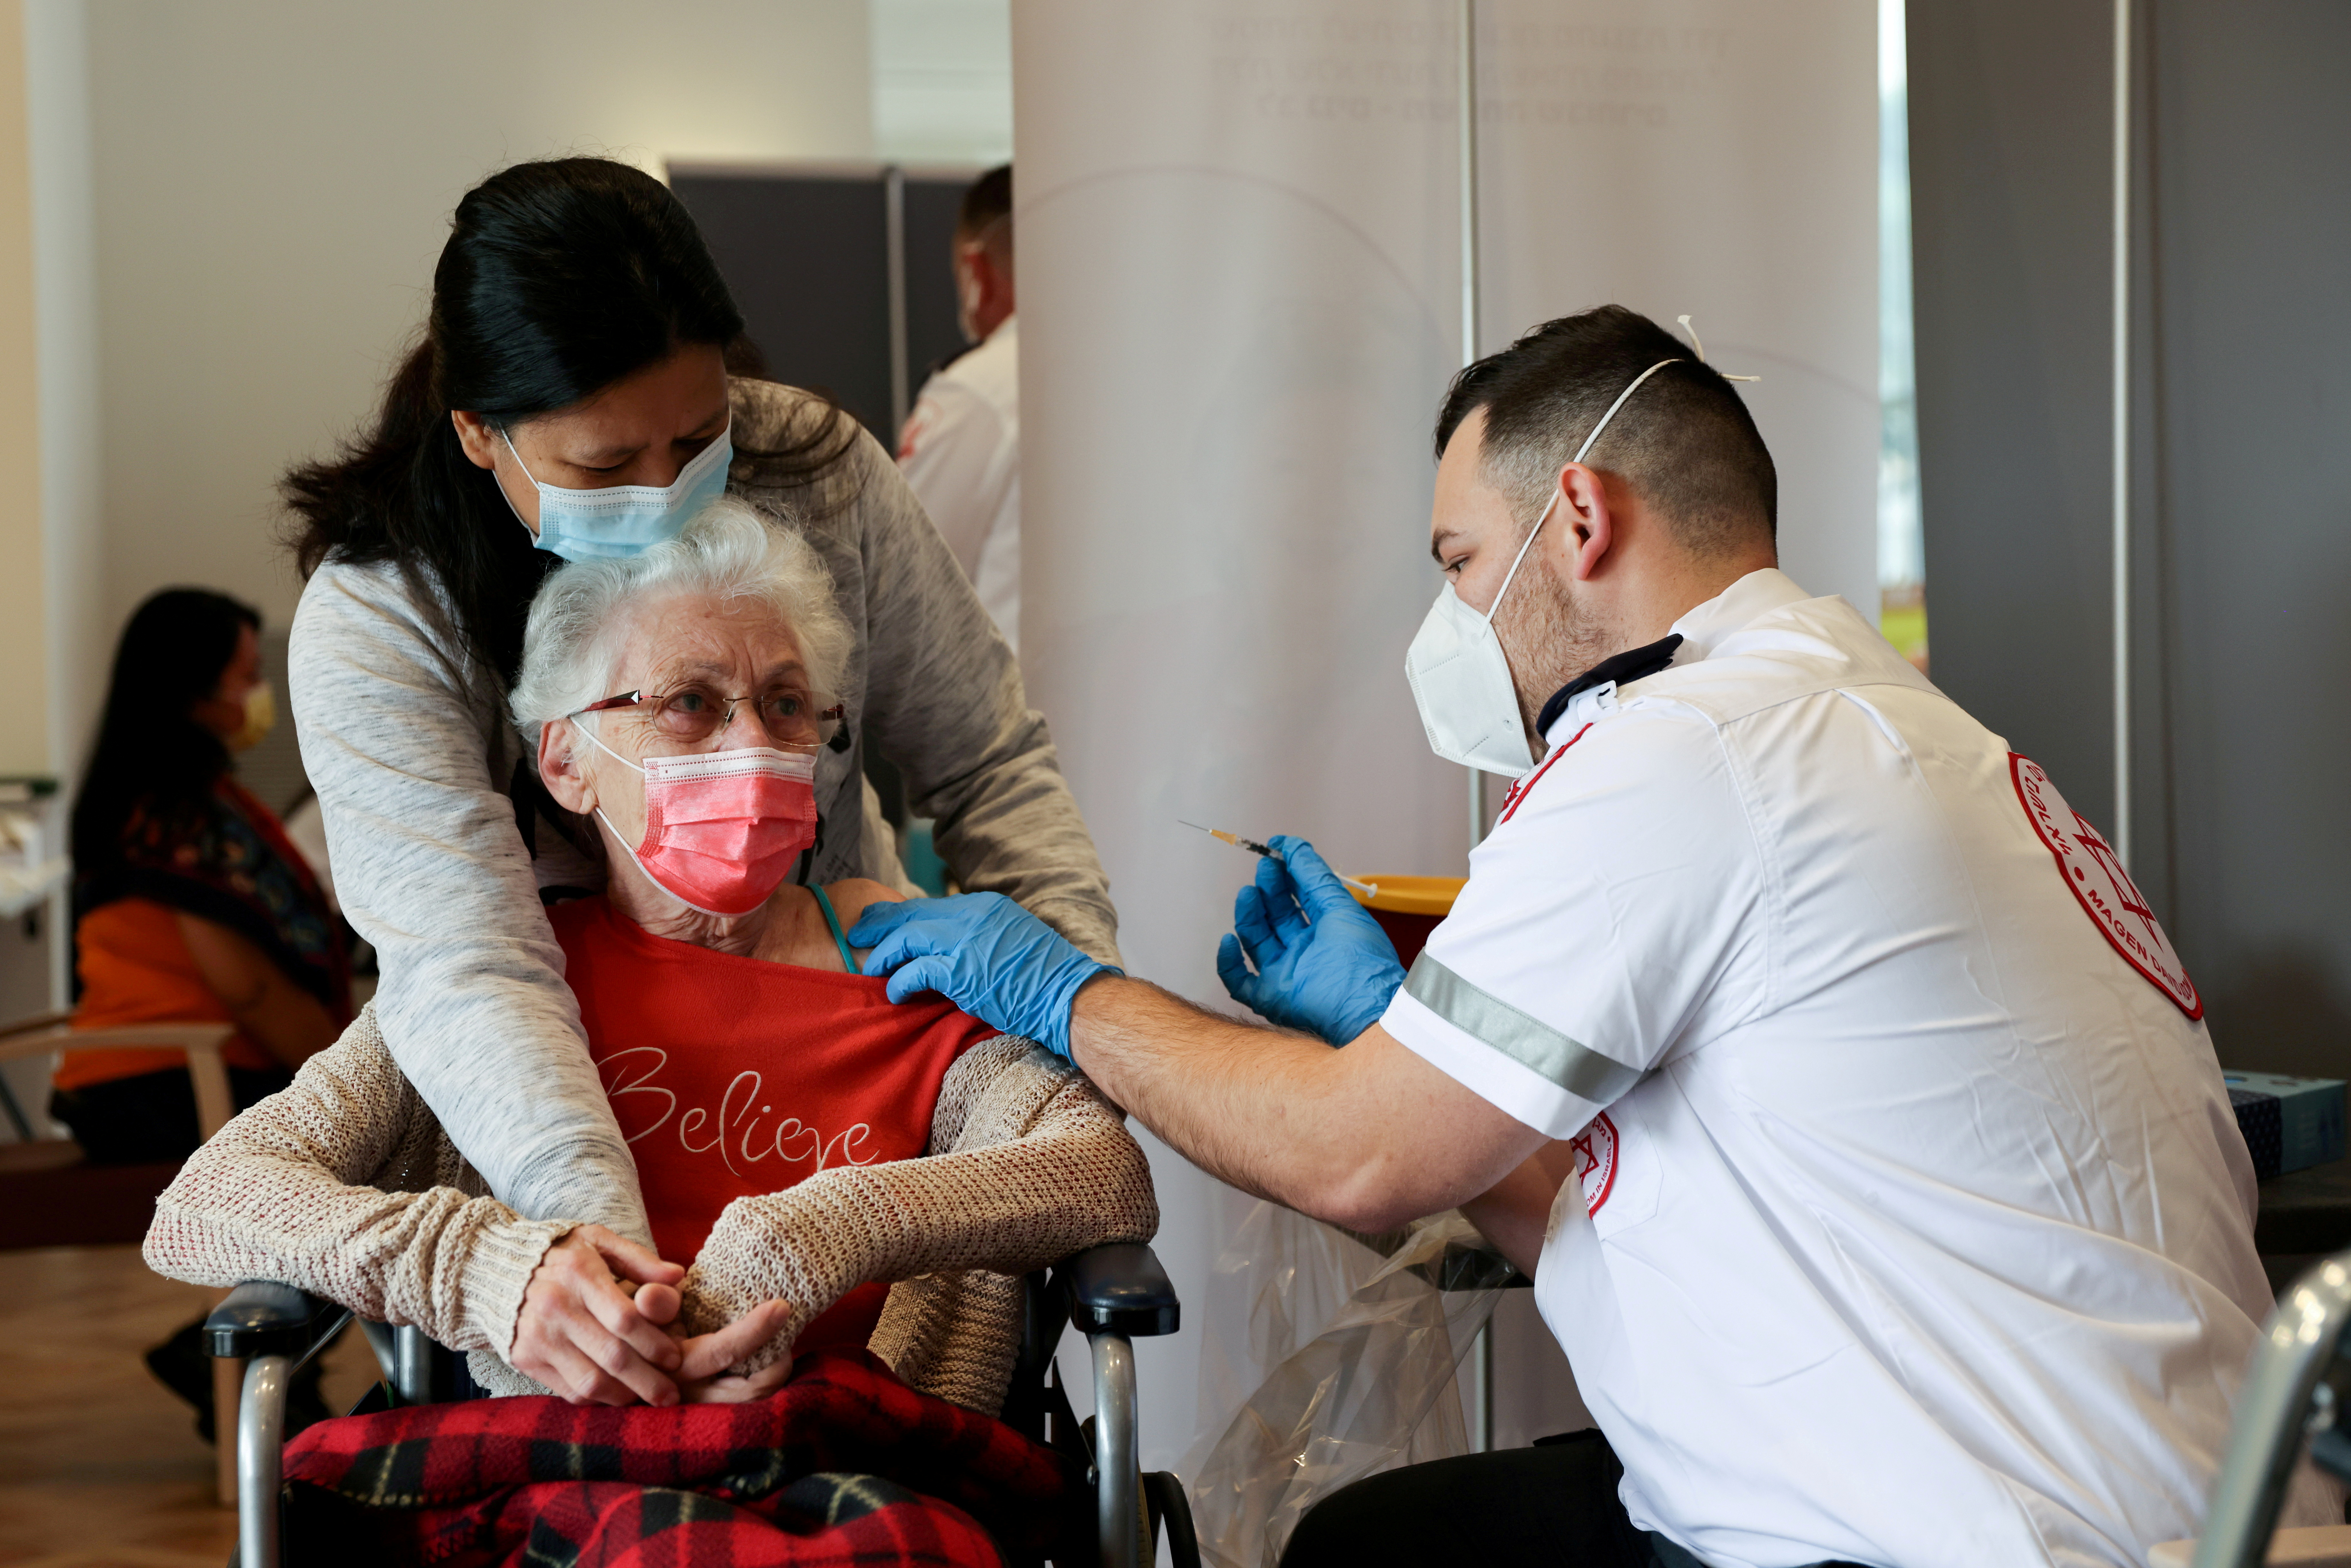 An elderly woman receives a booster shot of her vaccination against the coronavirus disease (COVID-19) at an assisted living facility, in Netanya, Israel January 19, 2021. REUTERS/Ronen Zvulun//File Photo